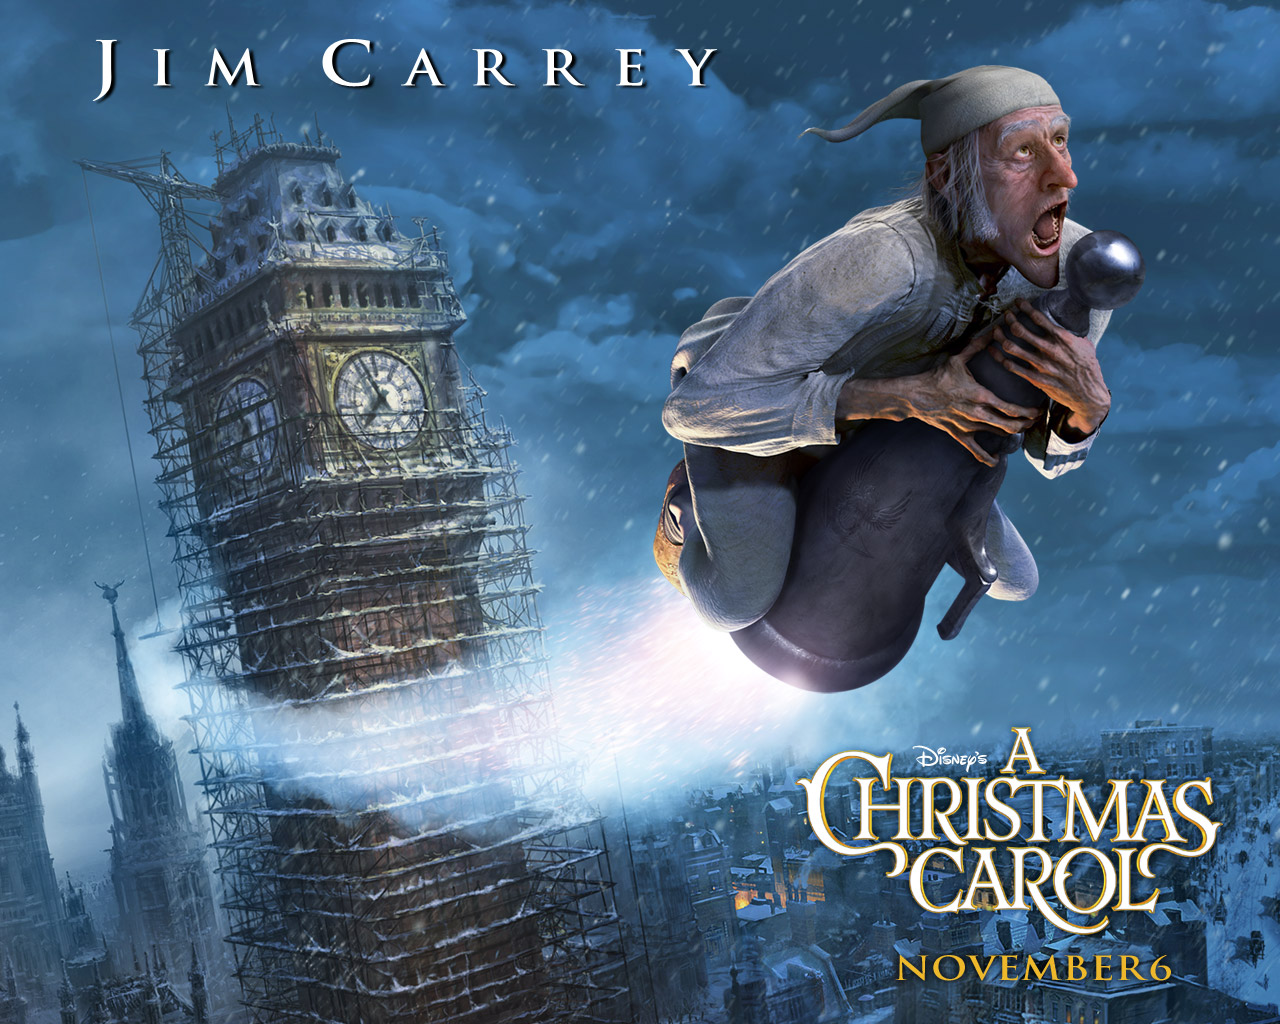 Christmas Carol Jim Carrey.Christina A Christmas Carol With Jim Carrey